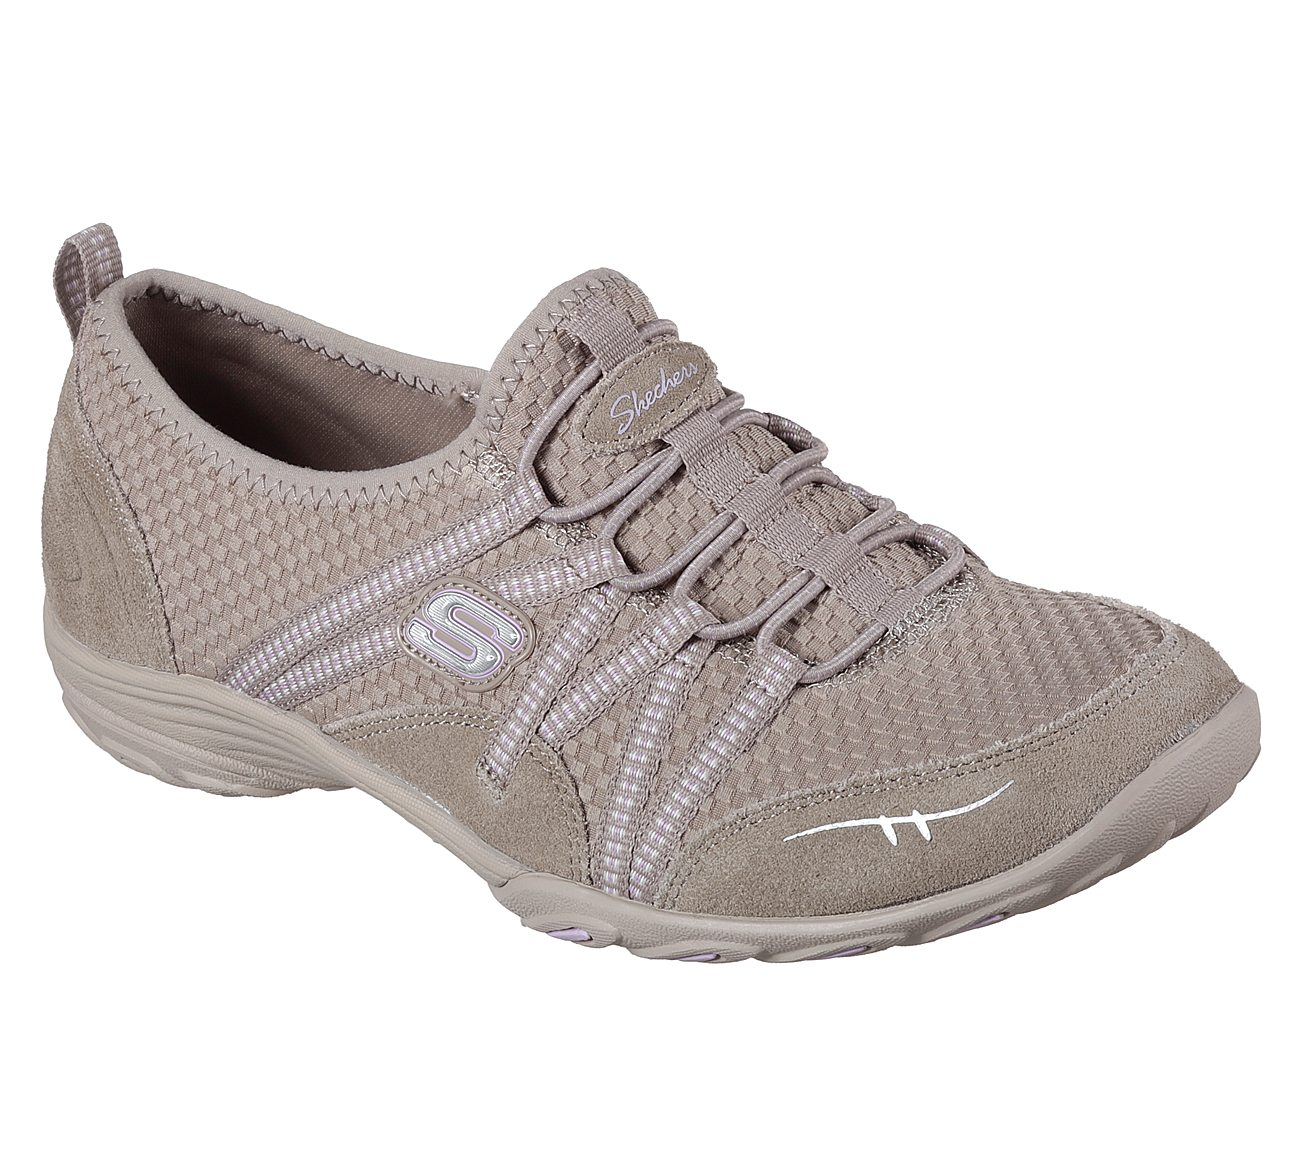 NEW SKECHERS WOMENS EMPRESS MOVE MOUNTAINS SNEAKER